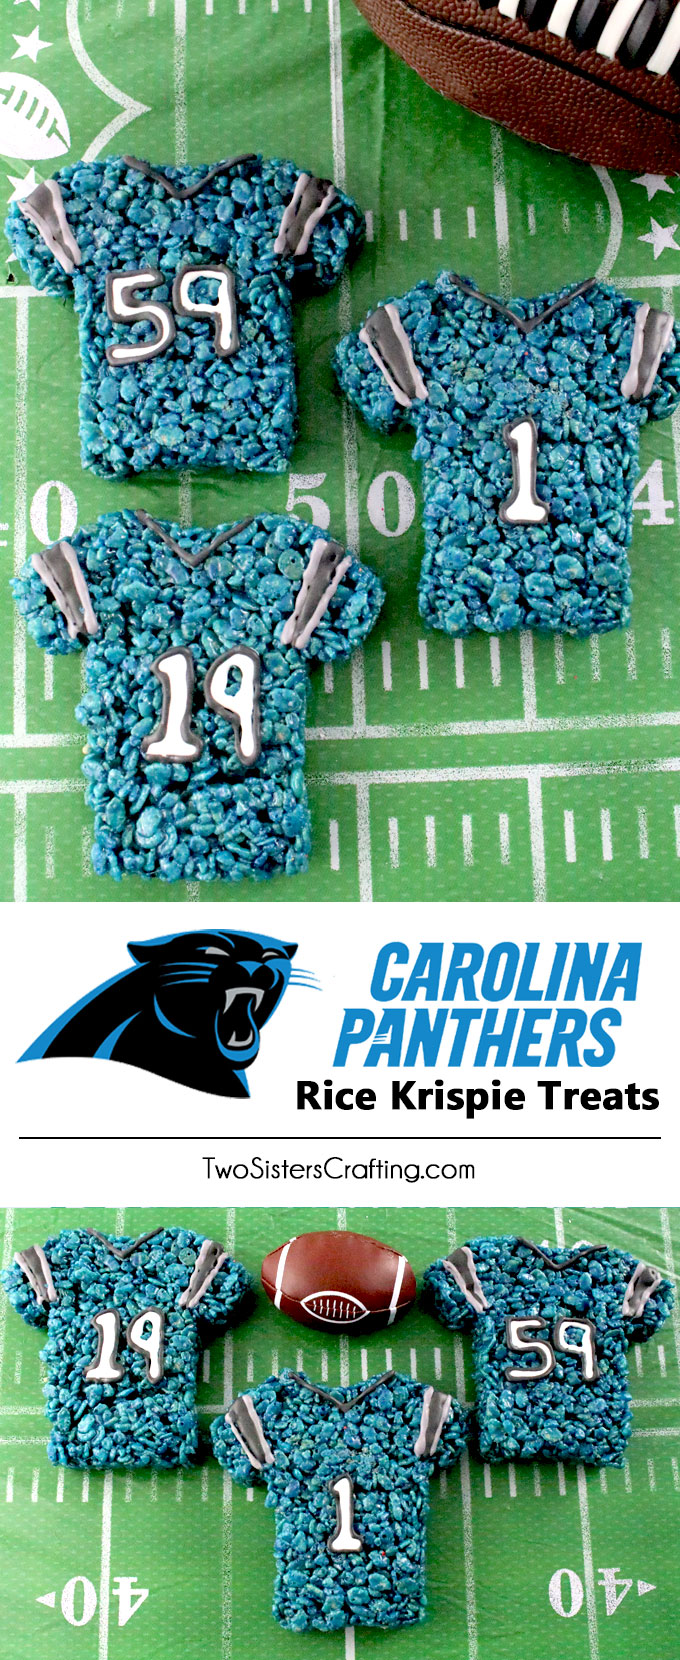 Carolina Panthers Rice Krispie Treats - Two Sisters